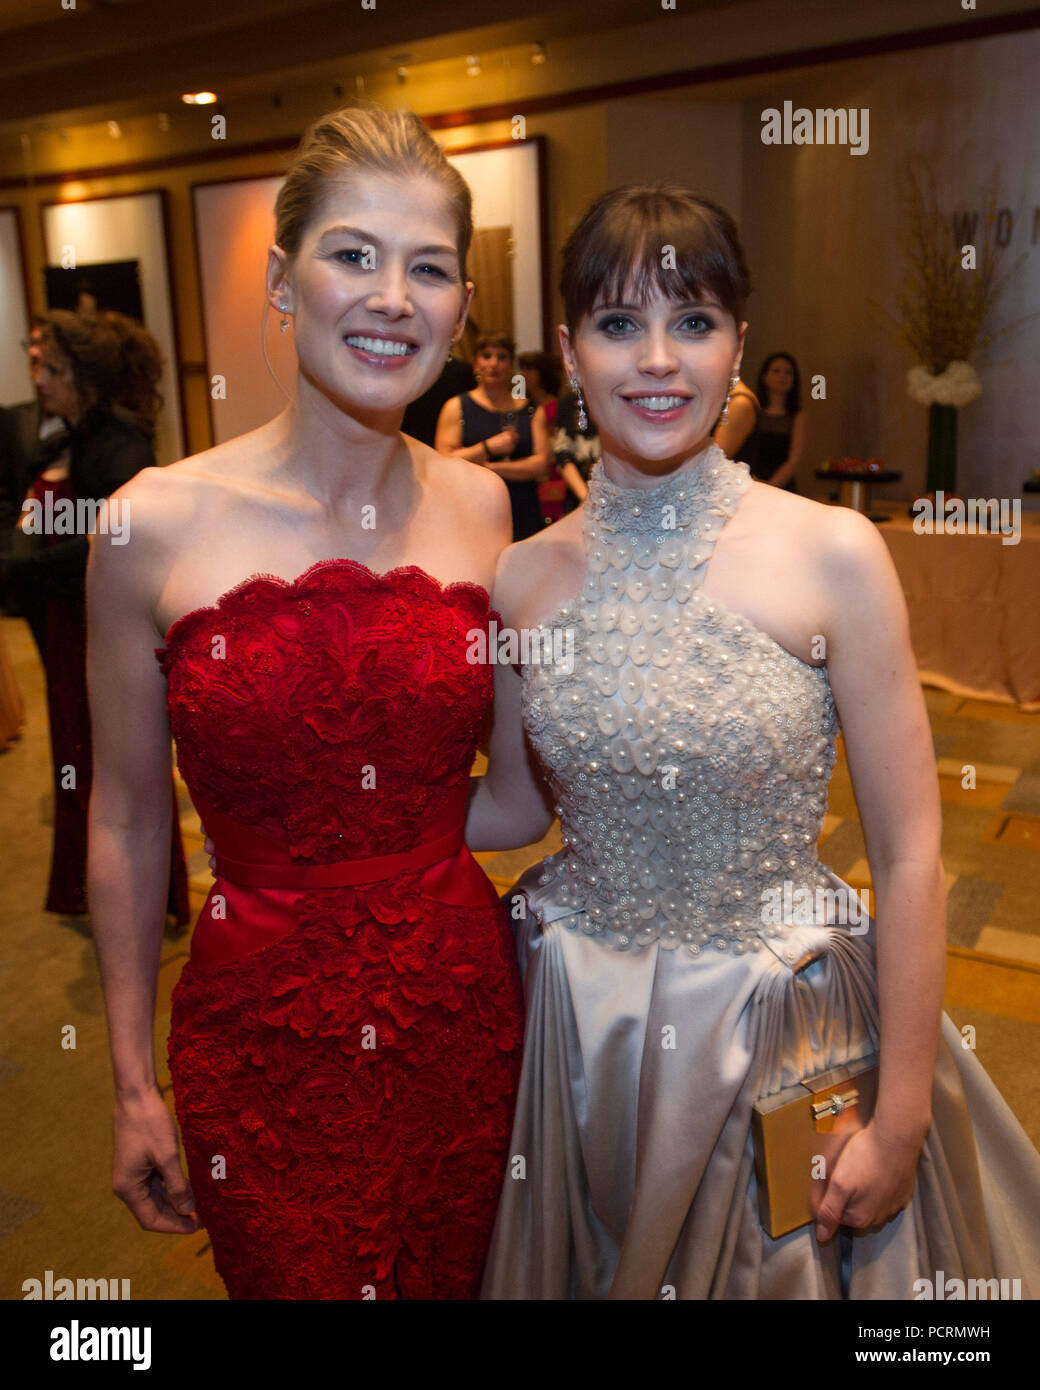 HOLLYWOOD, CA - FEBRUARY 22:  Rosamund Pike and Felicity Jones attendst the 87th Annual Academy Awards at Hollywood & Highland Center on February 22, 2015 in Hollywood, California.   People:  Rosamund Pike and Felicity Jones Stock Photo